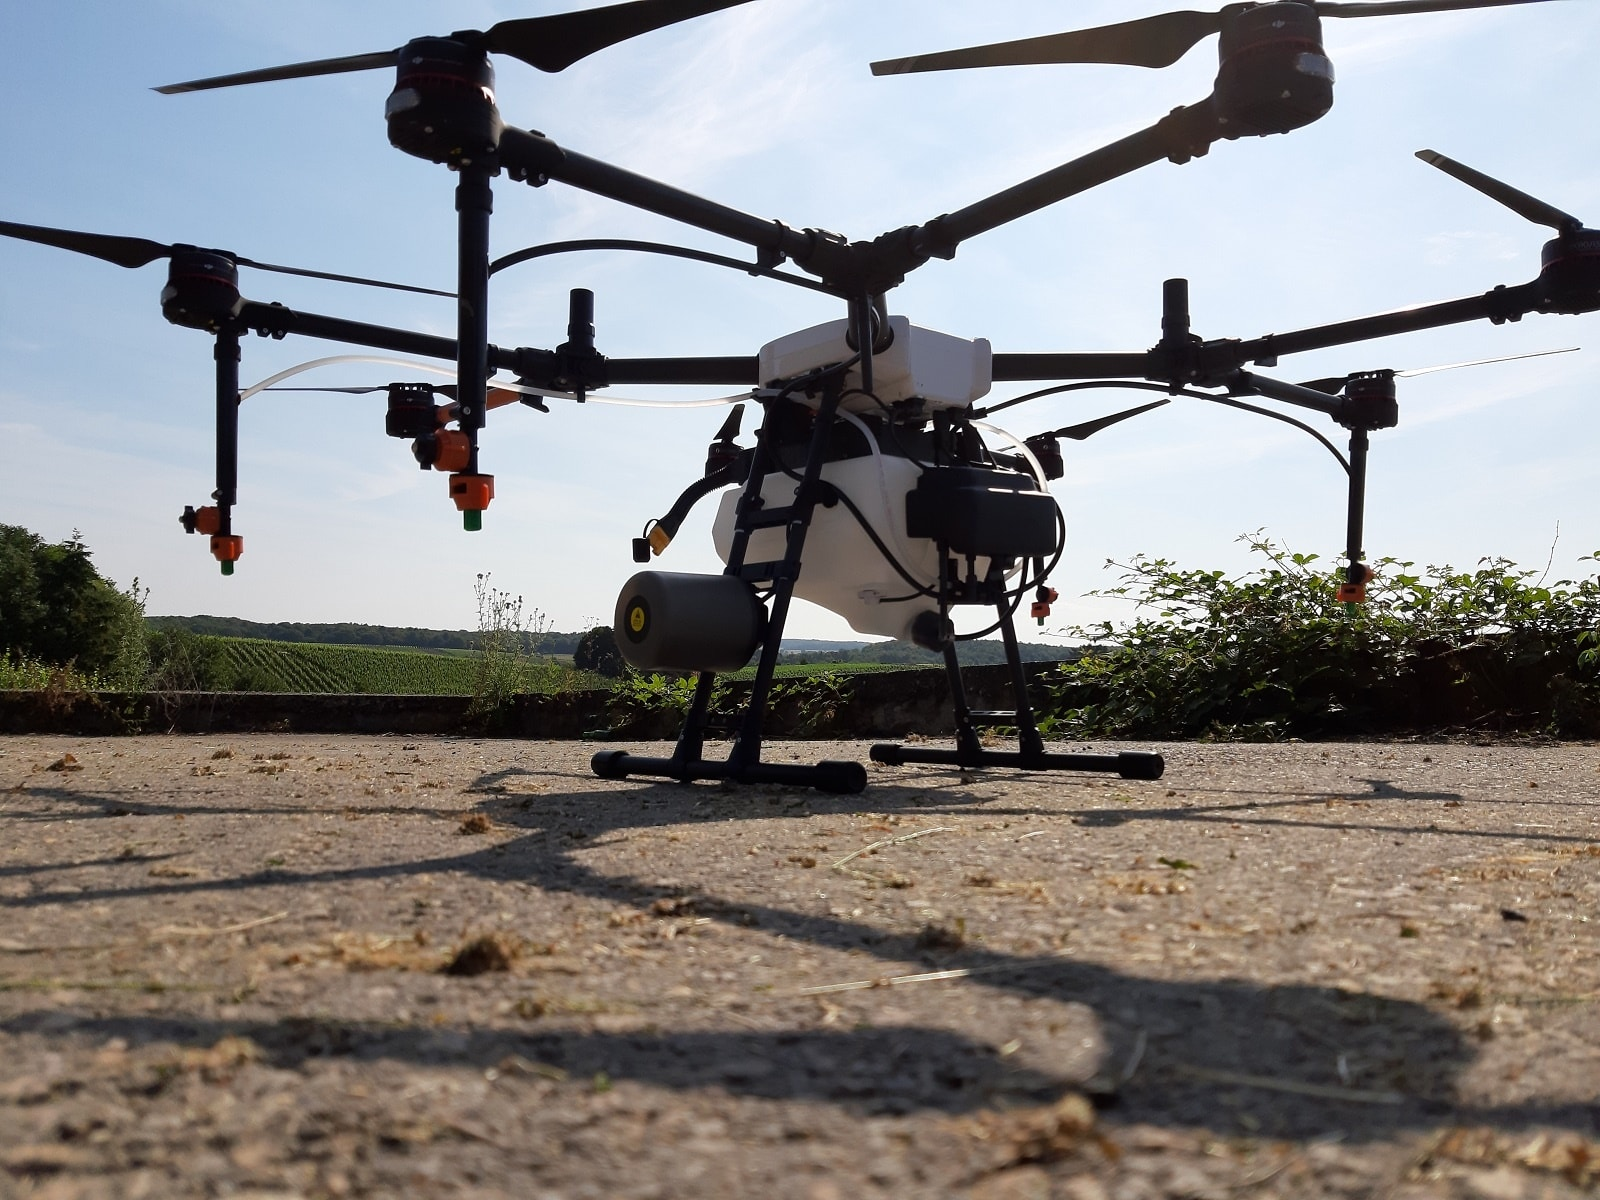 Luxaviation Group and Domaine L&R Kox fly drone pilot project for the spraying of vineyards in Luxembourg